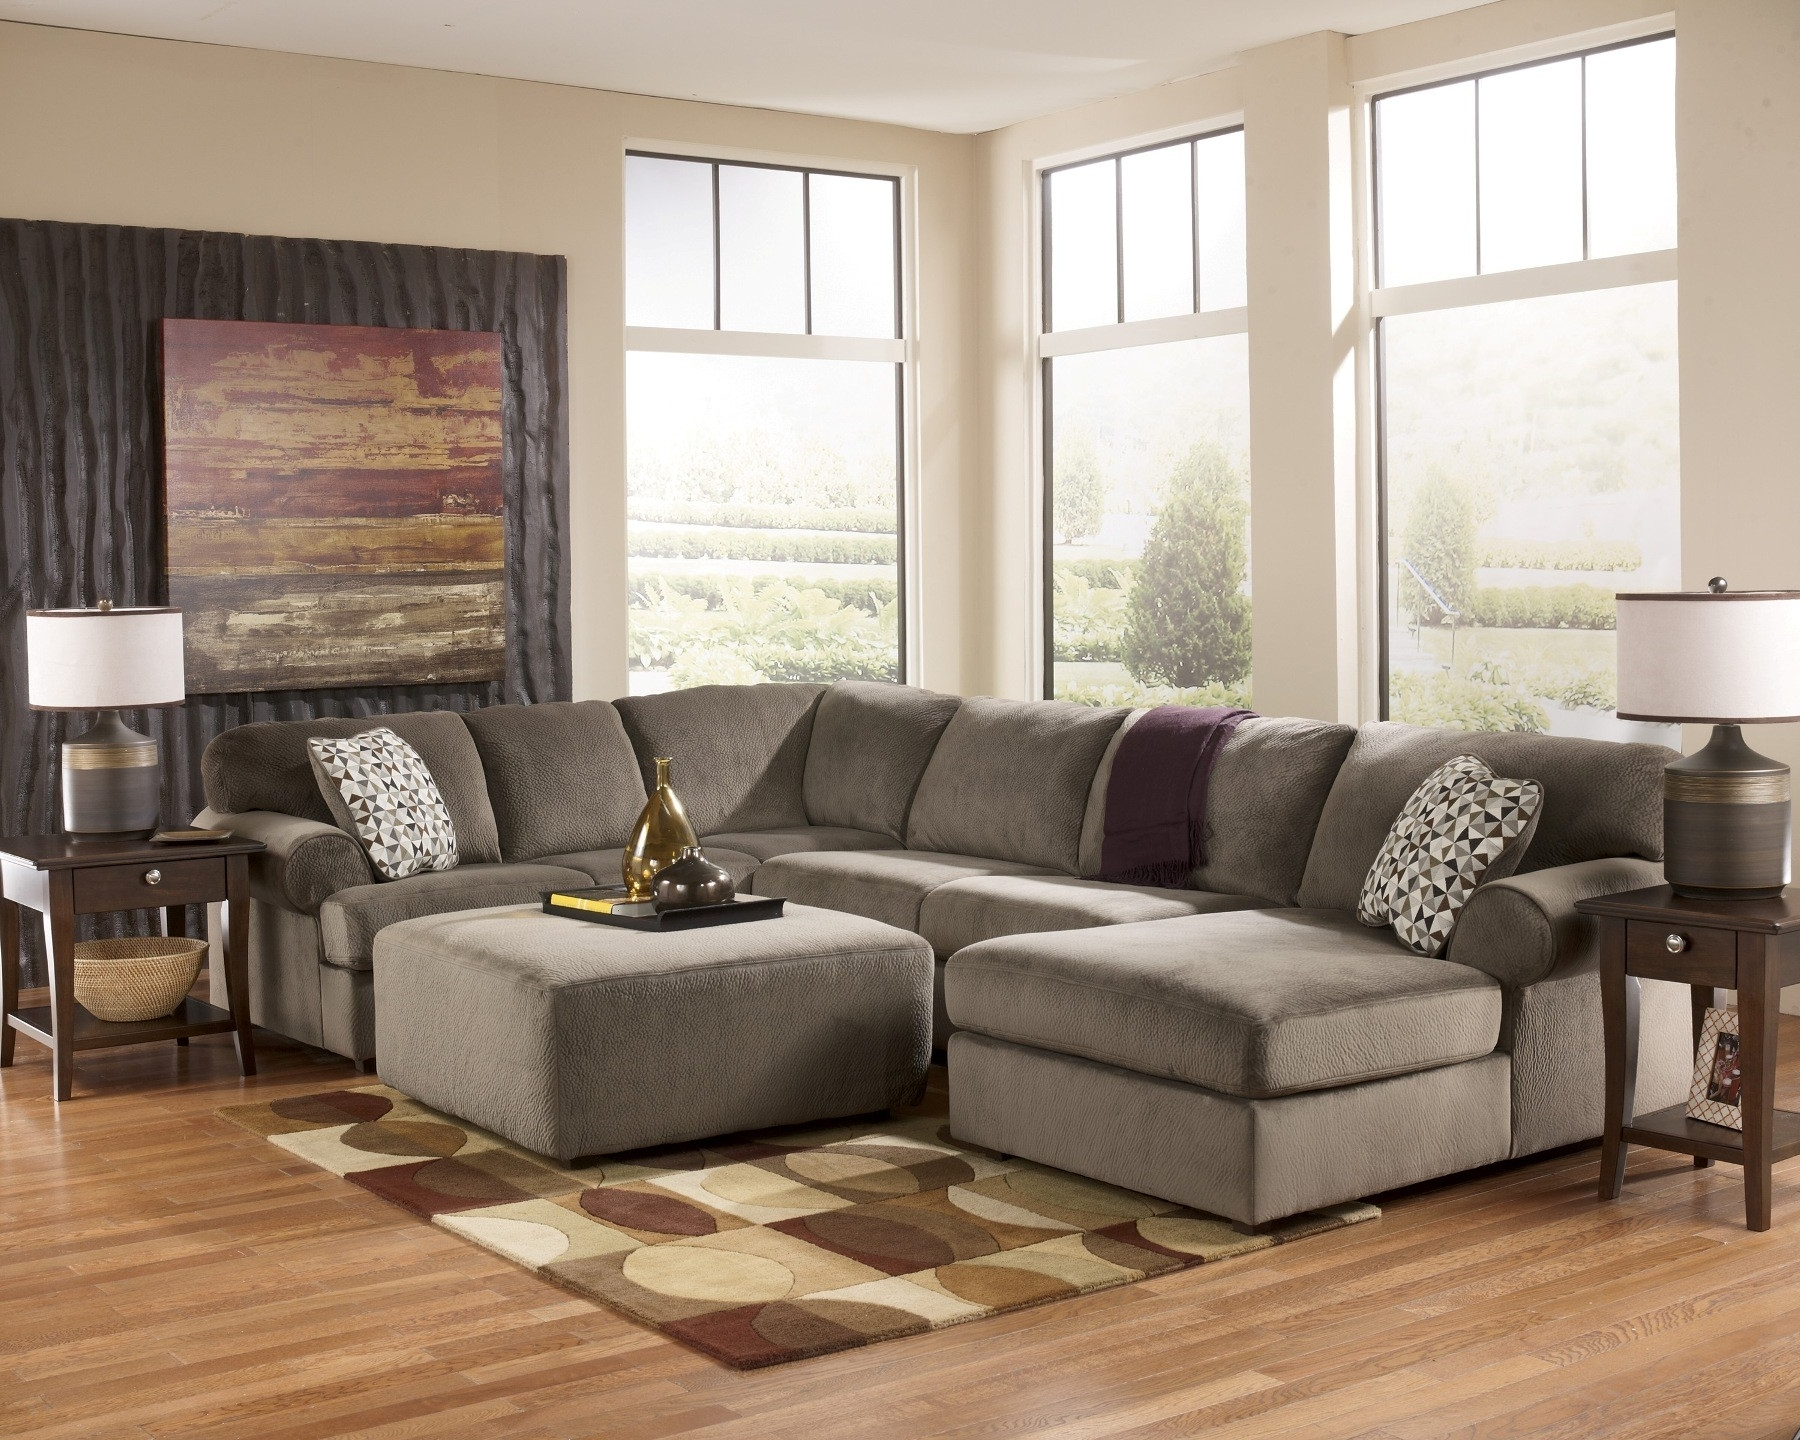 Most Recent El Paso Texas Sectional Sofas Inside Asc Furniture – El Paso, Tx (View 3 of 15)